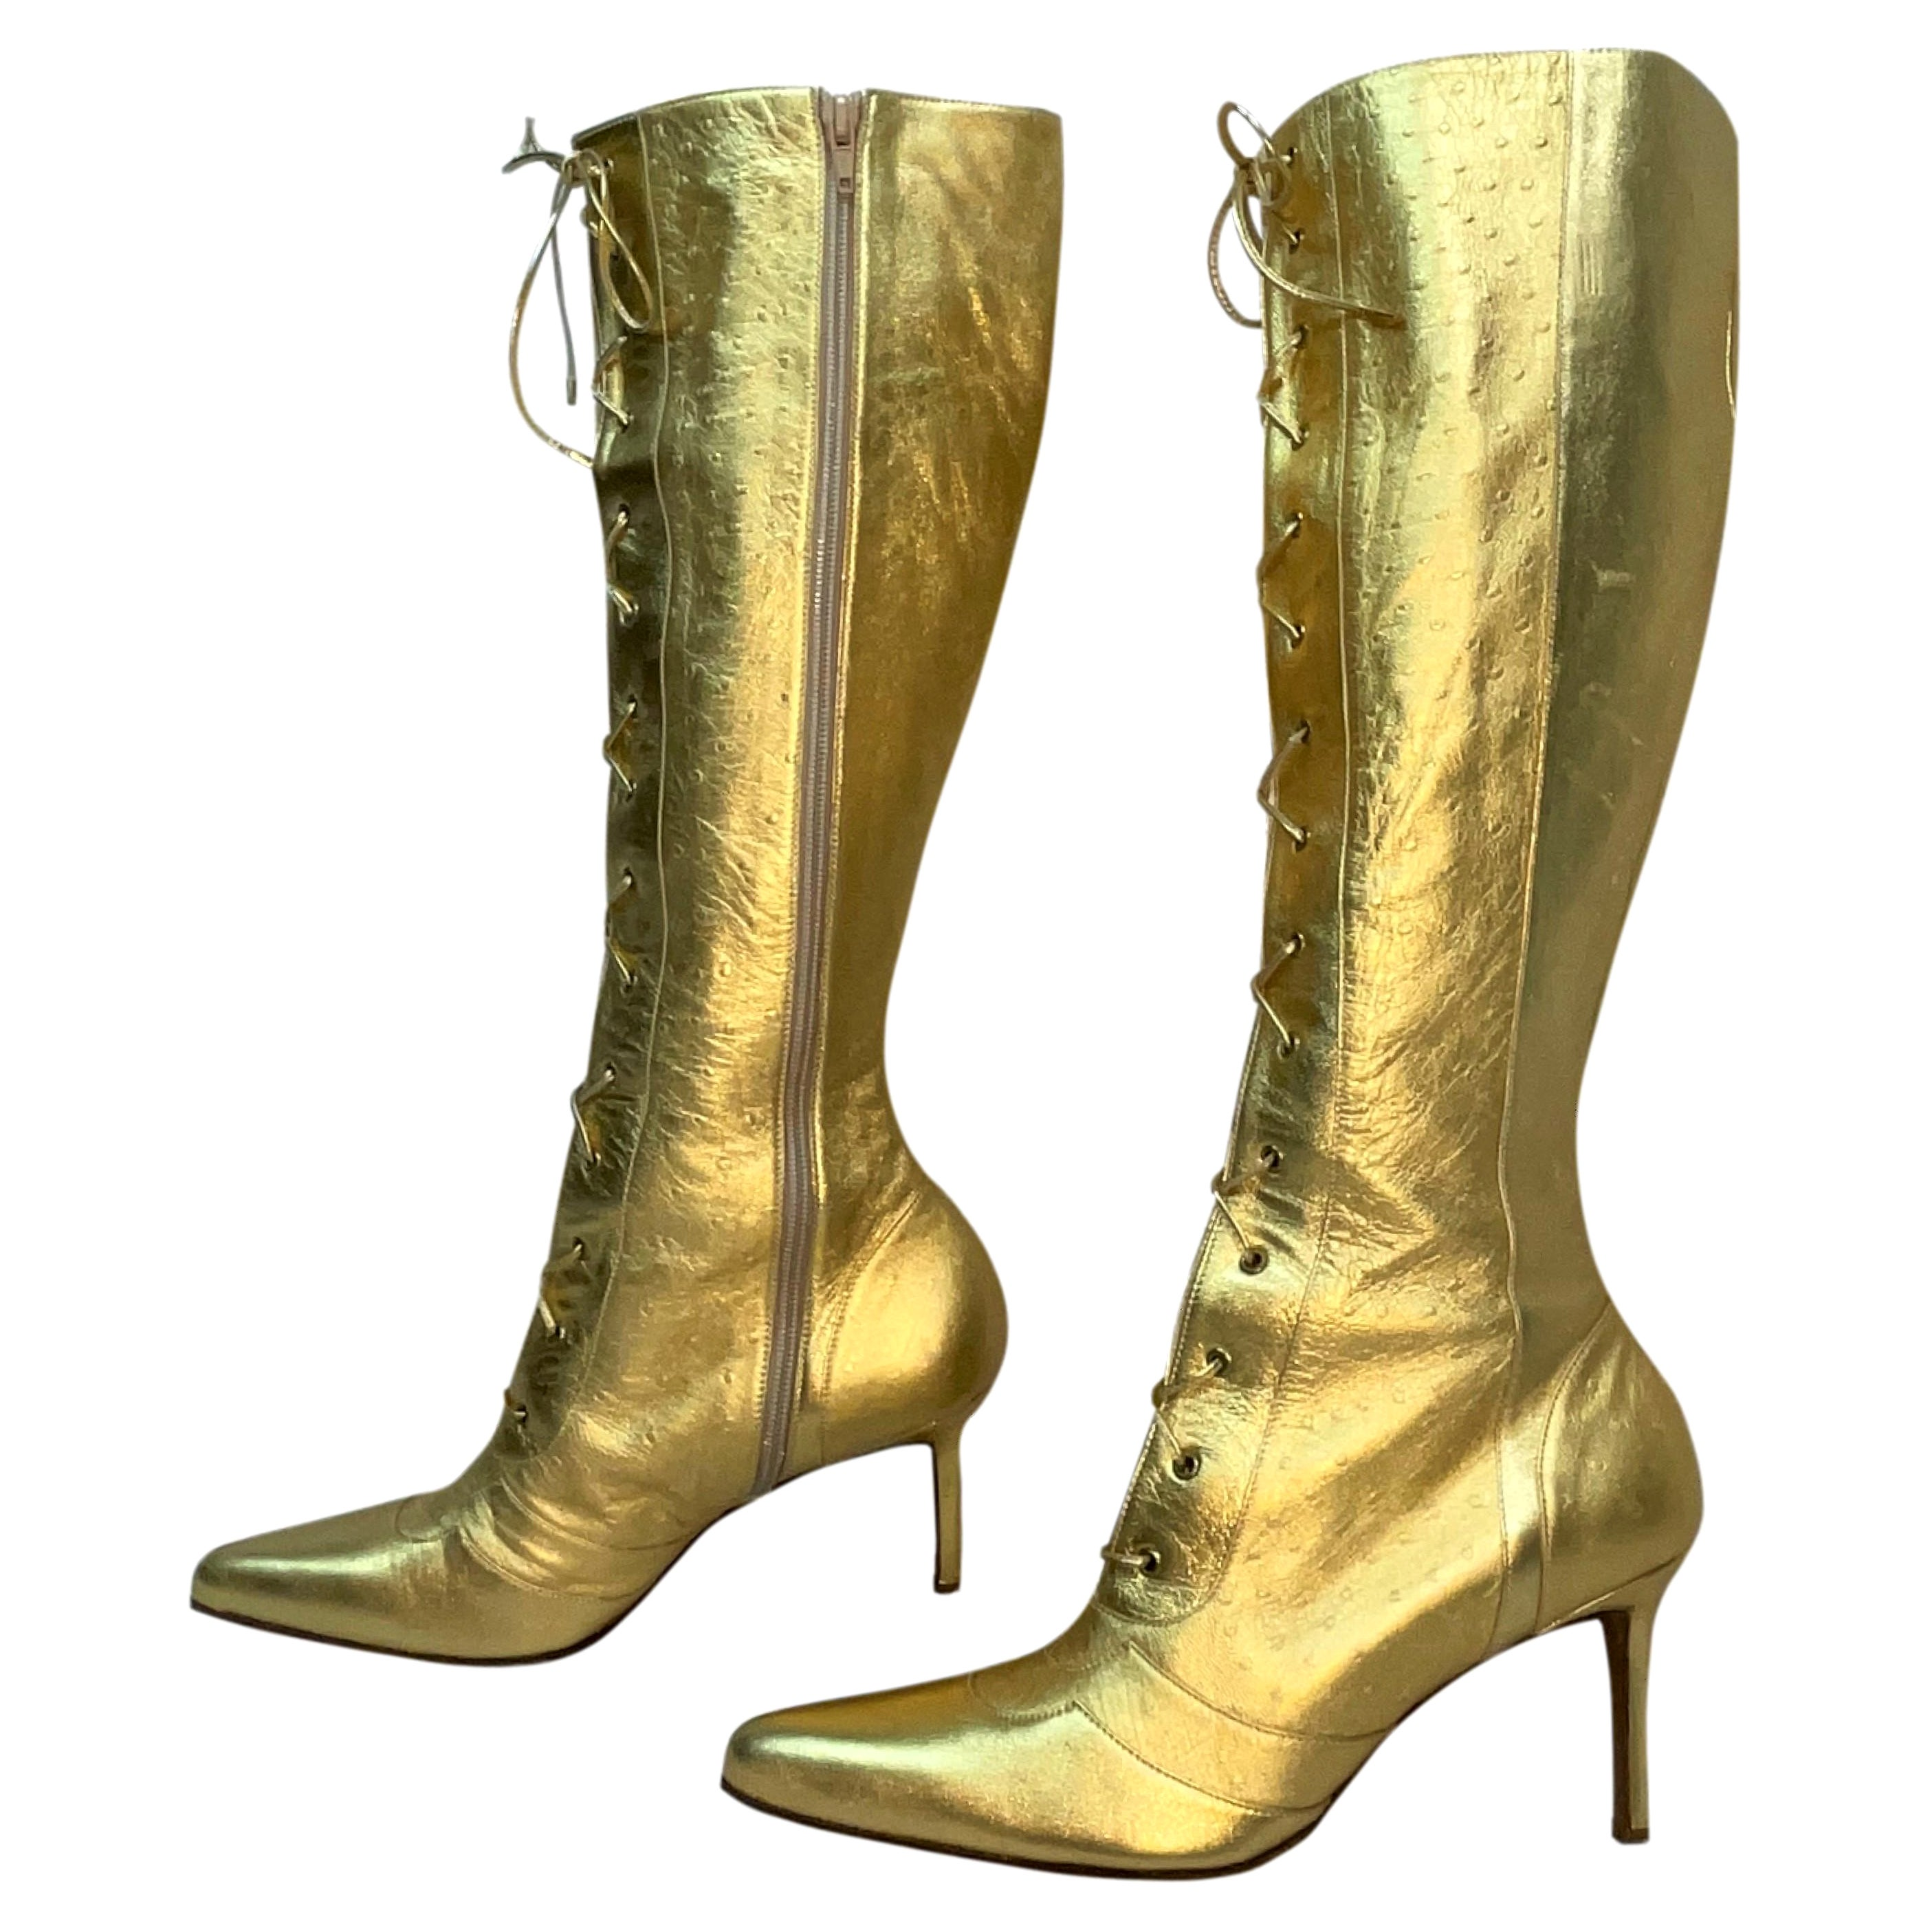 F/W 2000 Christian Dior John Galliano Gold Ostrich Leather Tall Heel Boots